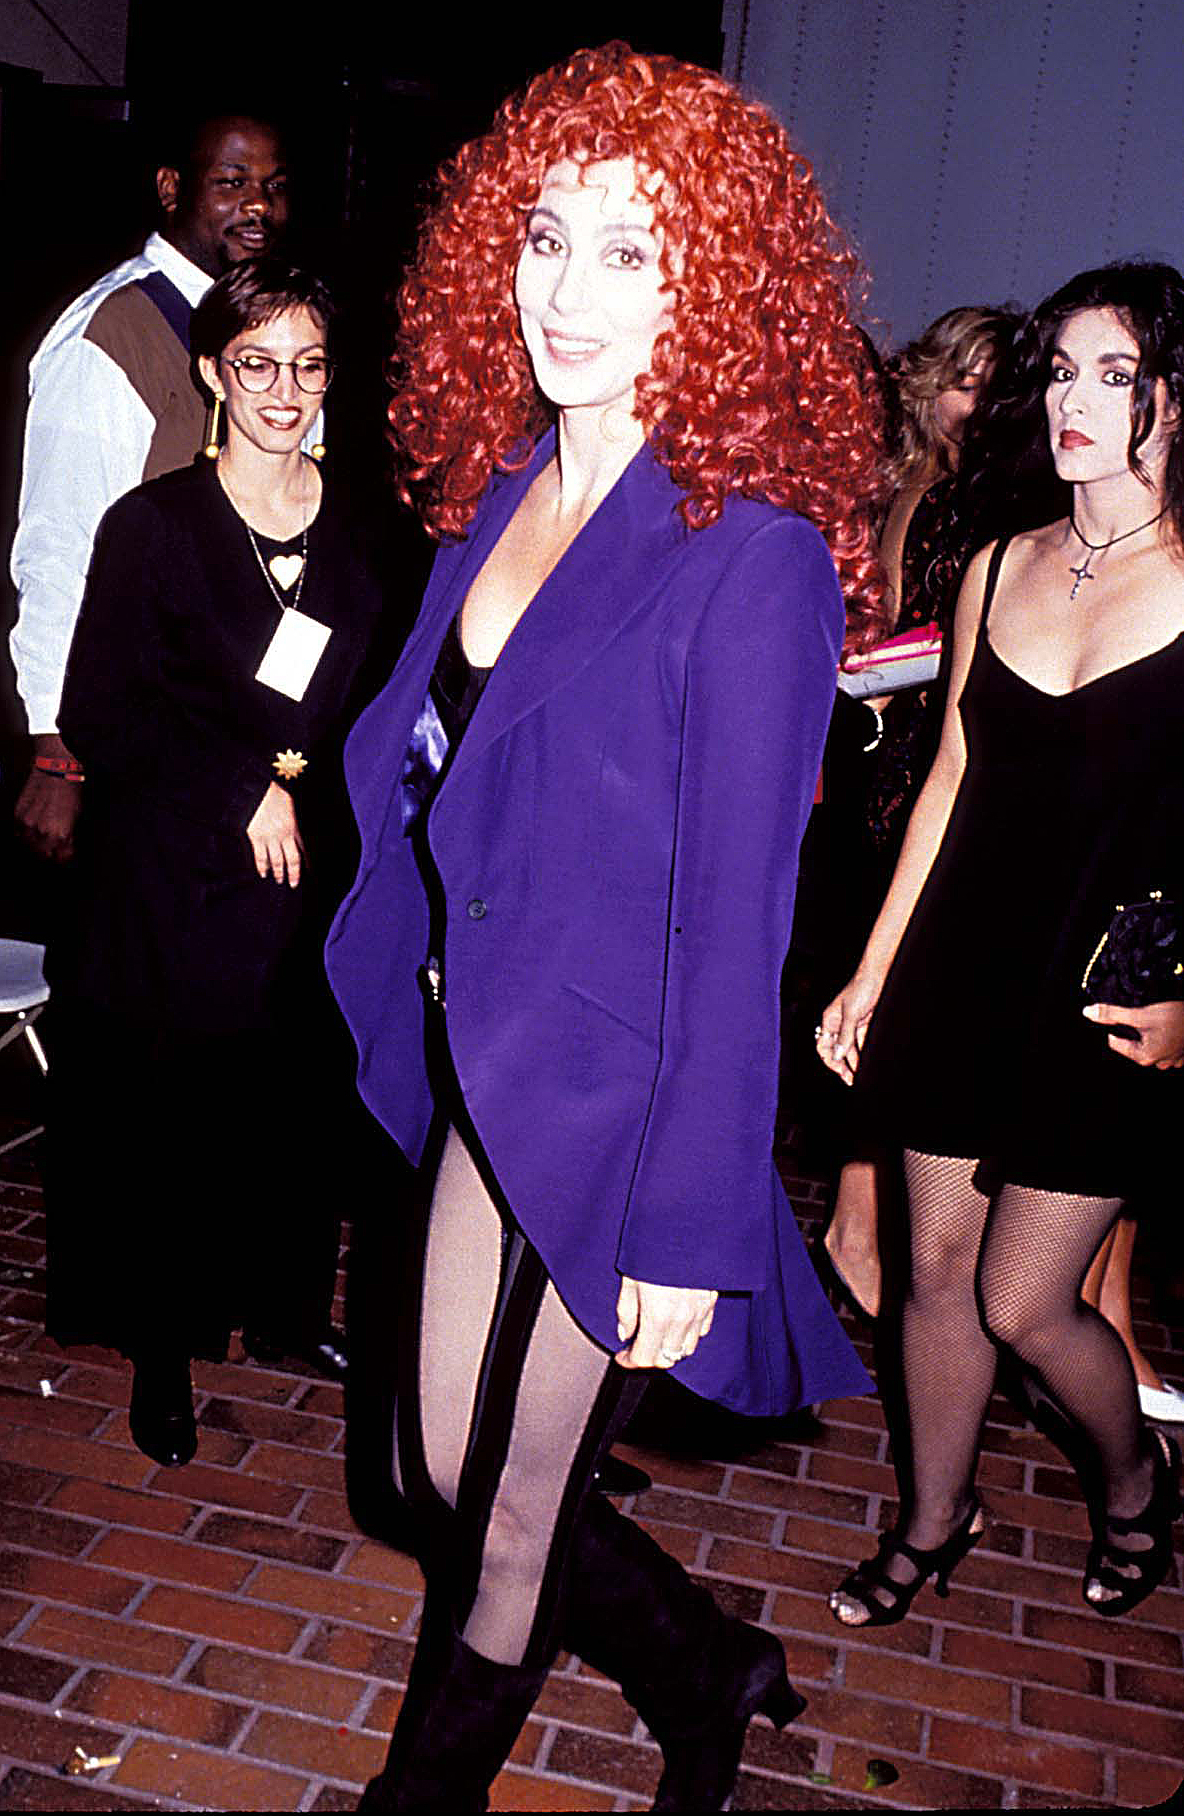 1991-Cher - Adhering to the playful dress code for the MTV Video Music Awards, the Mamma Mia! Here We Go Again actress changed up her classic long black hair with a curly red wig.